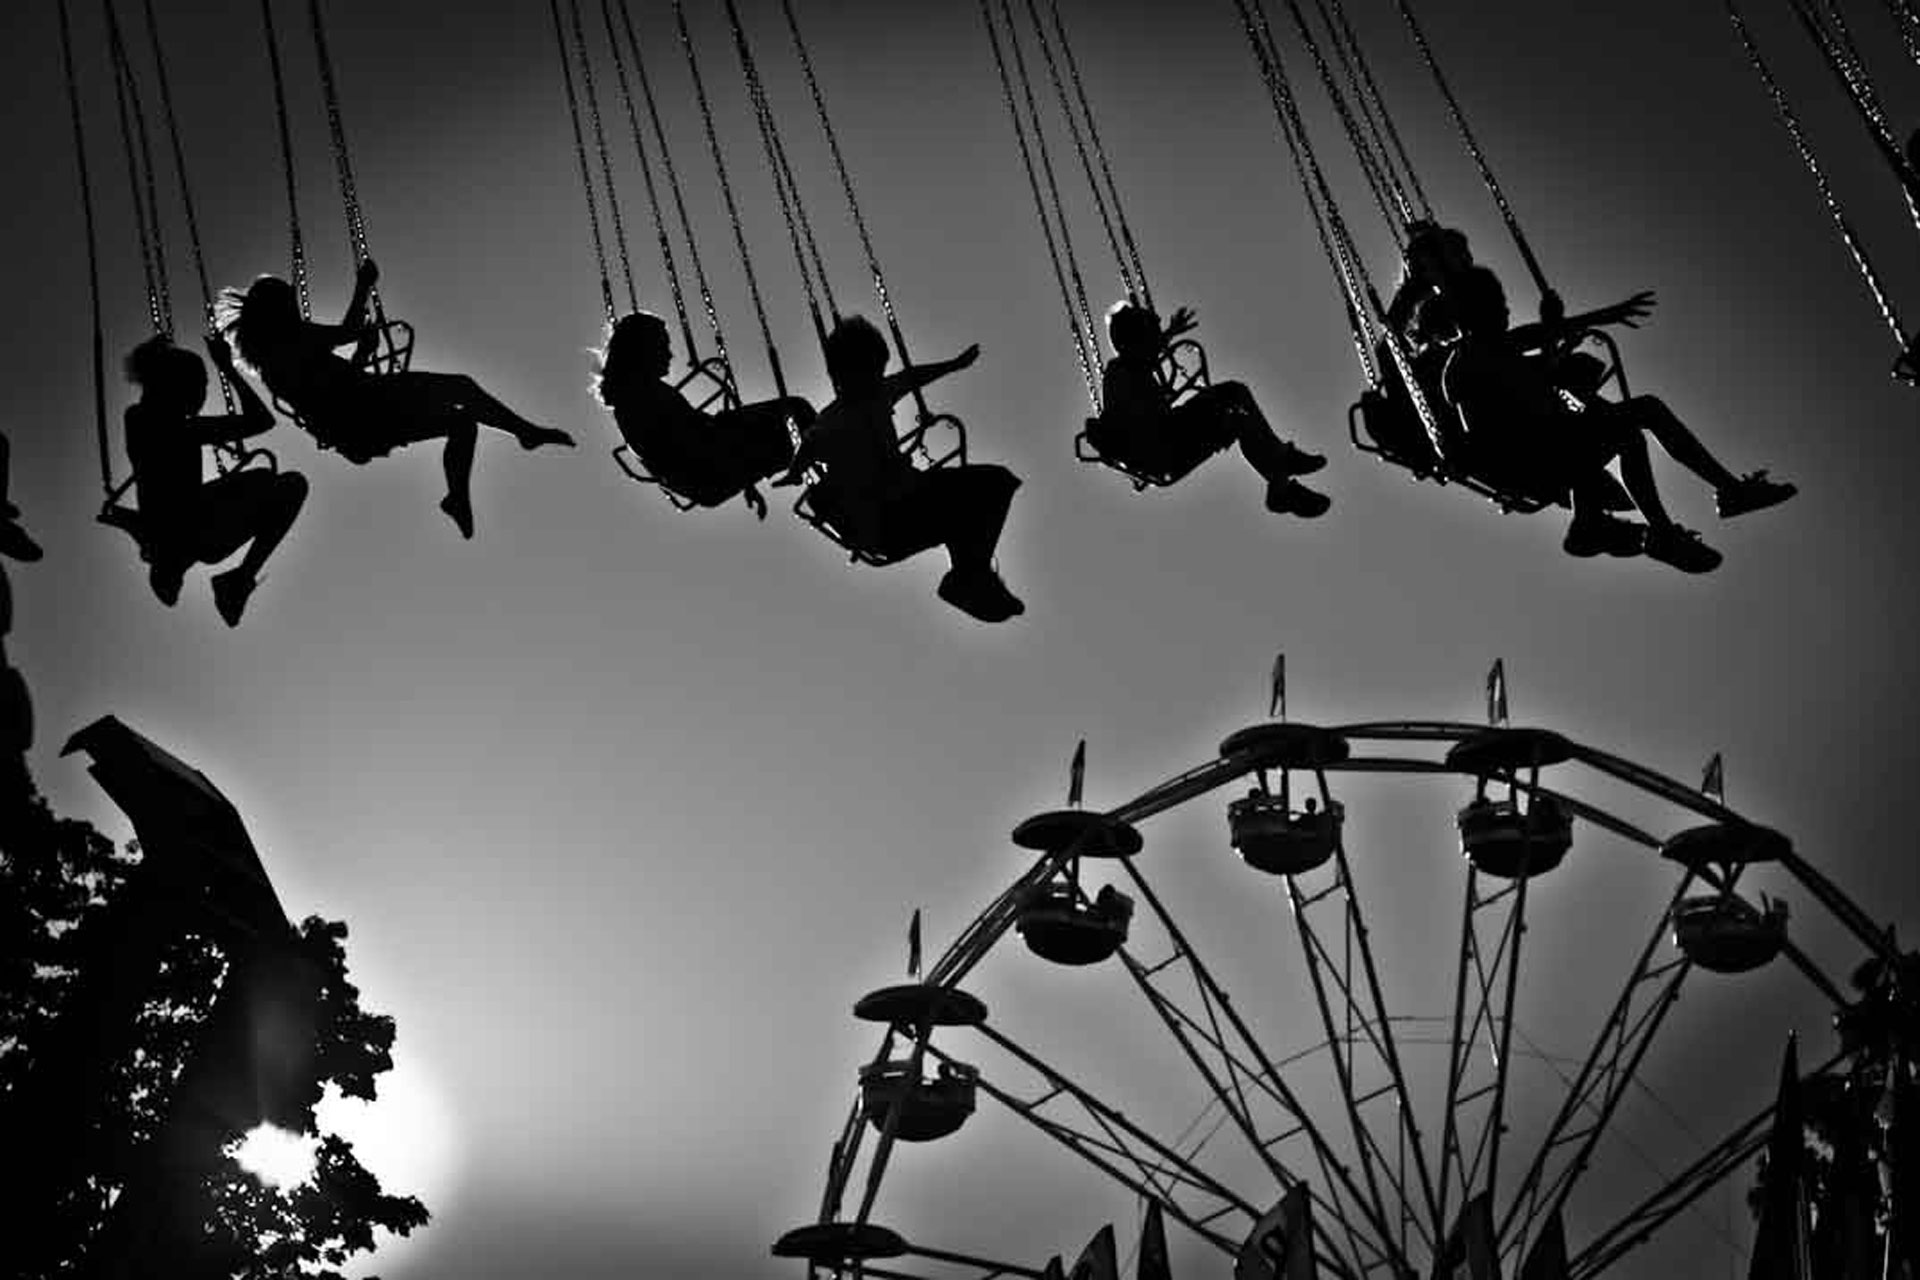 ©Ken Shung 'Swingers' . Black and white-Ferris Wheel and a carousal, fun fair, silhouetted against the sky